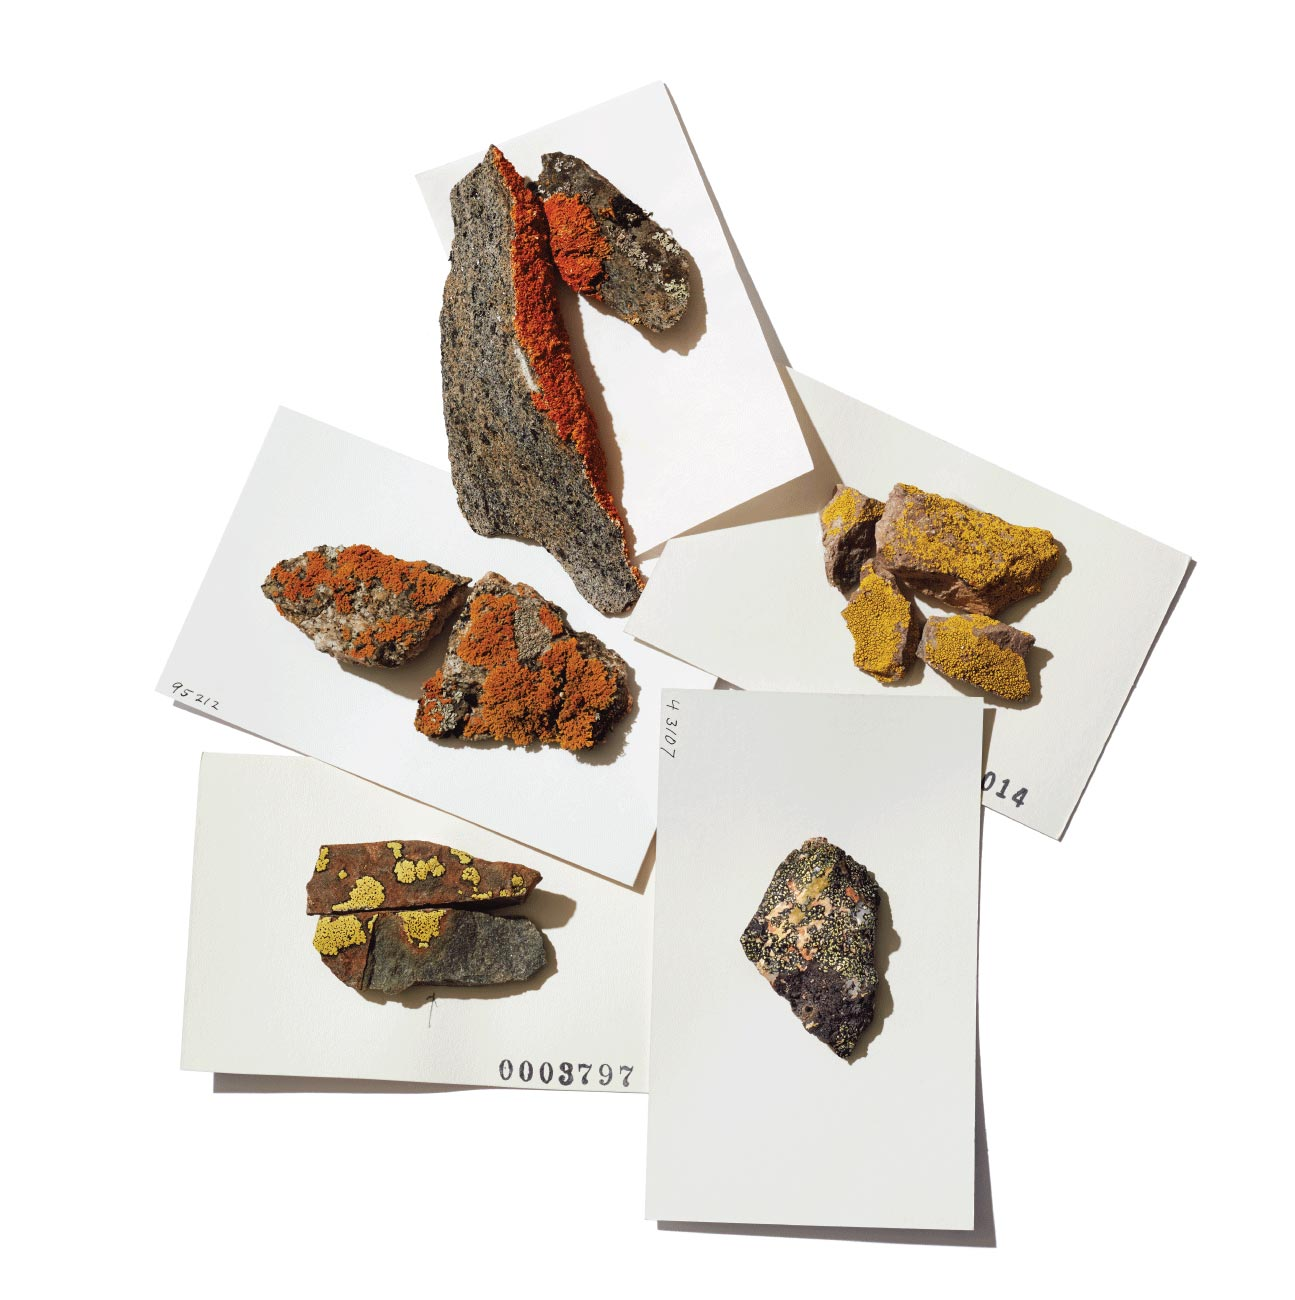 Five different lichen specimens from the Bell collection